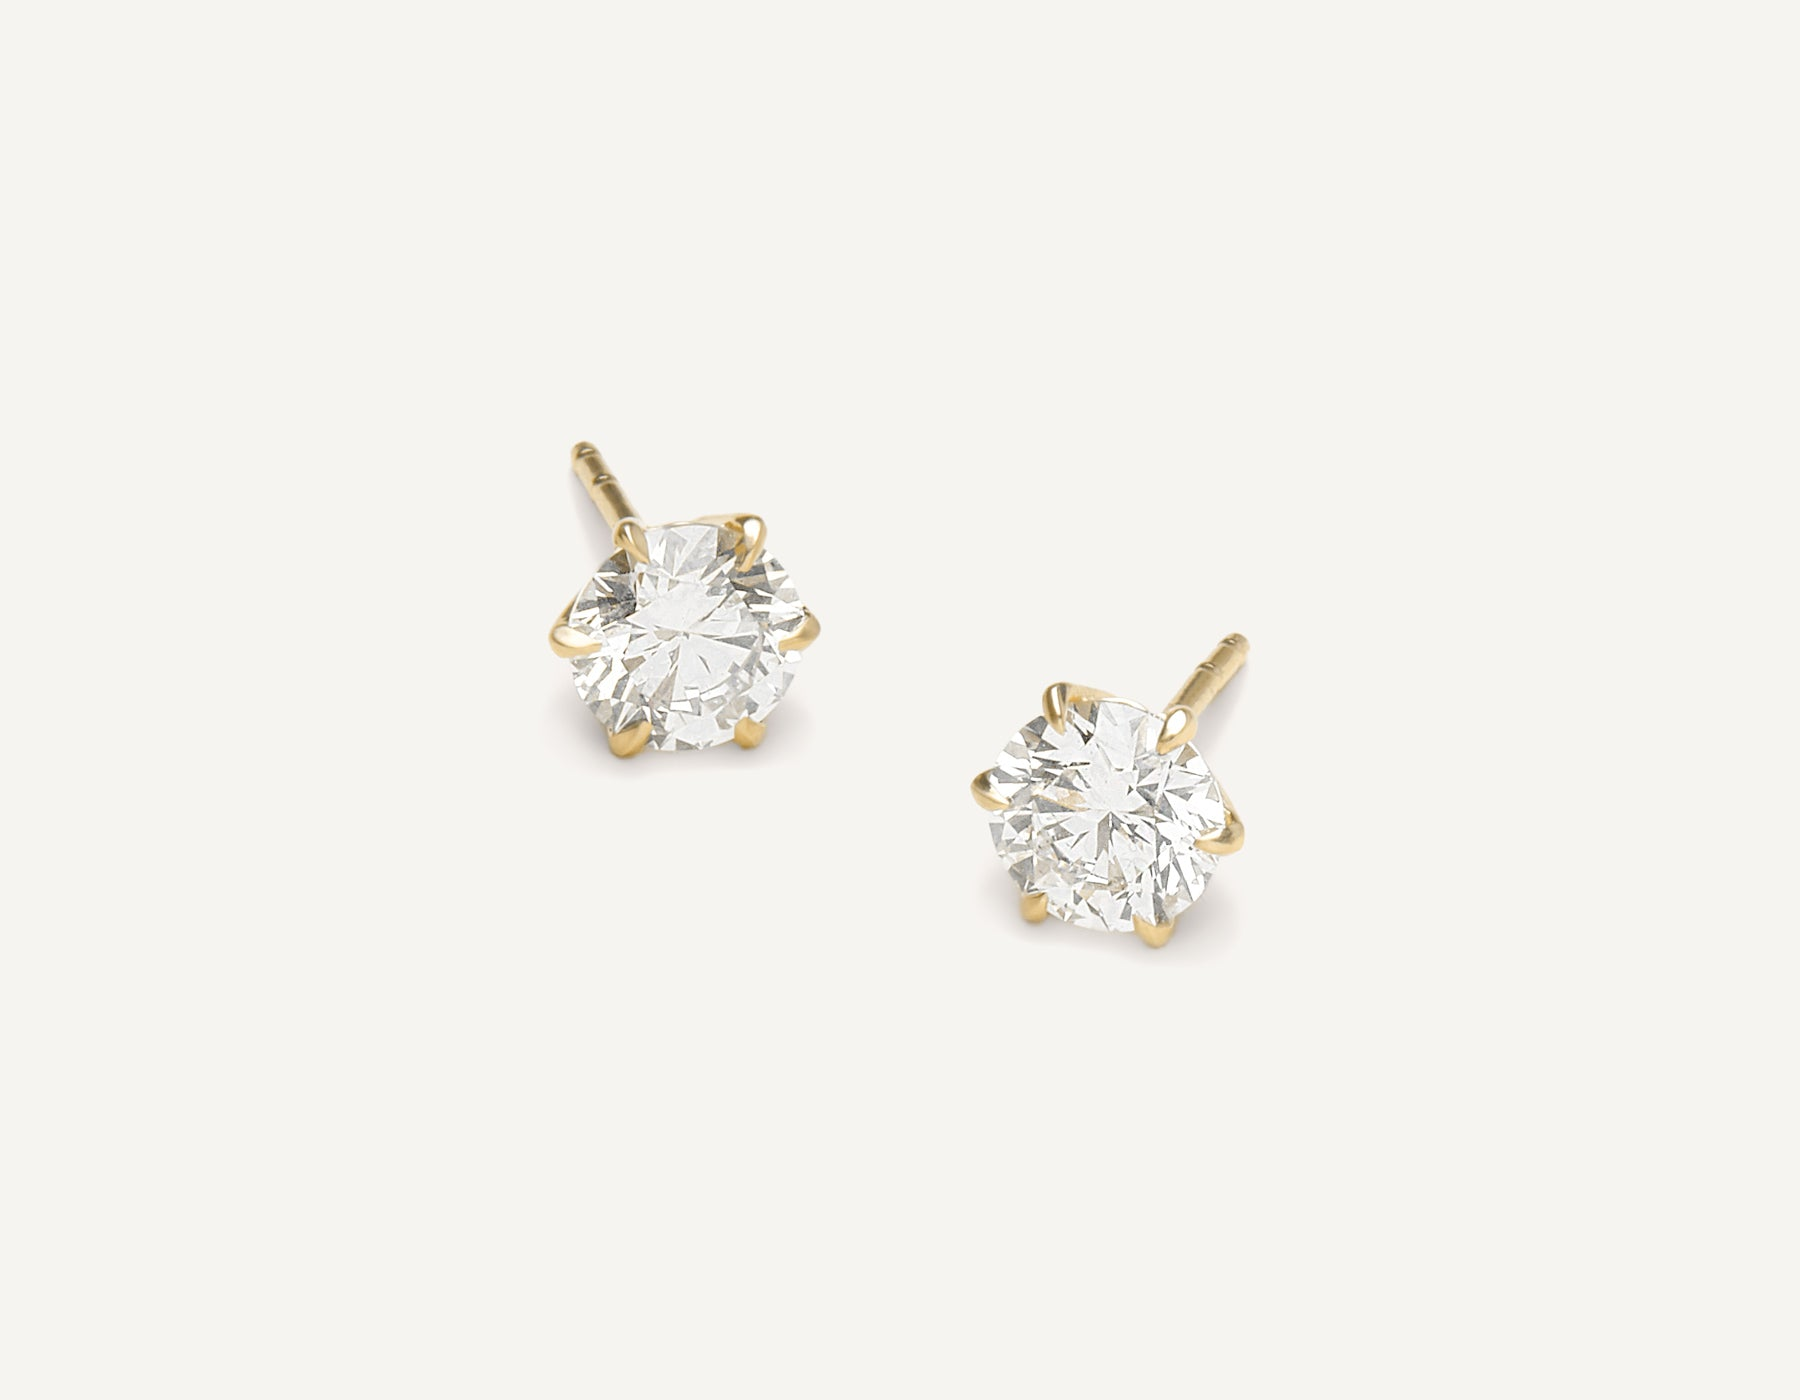 Vrai & oro 1.0 carat Round Brilliant Diamond stud earring 18k solid gold simple modern, 18K Yellow Gold